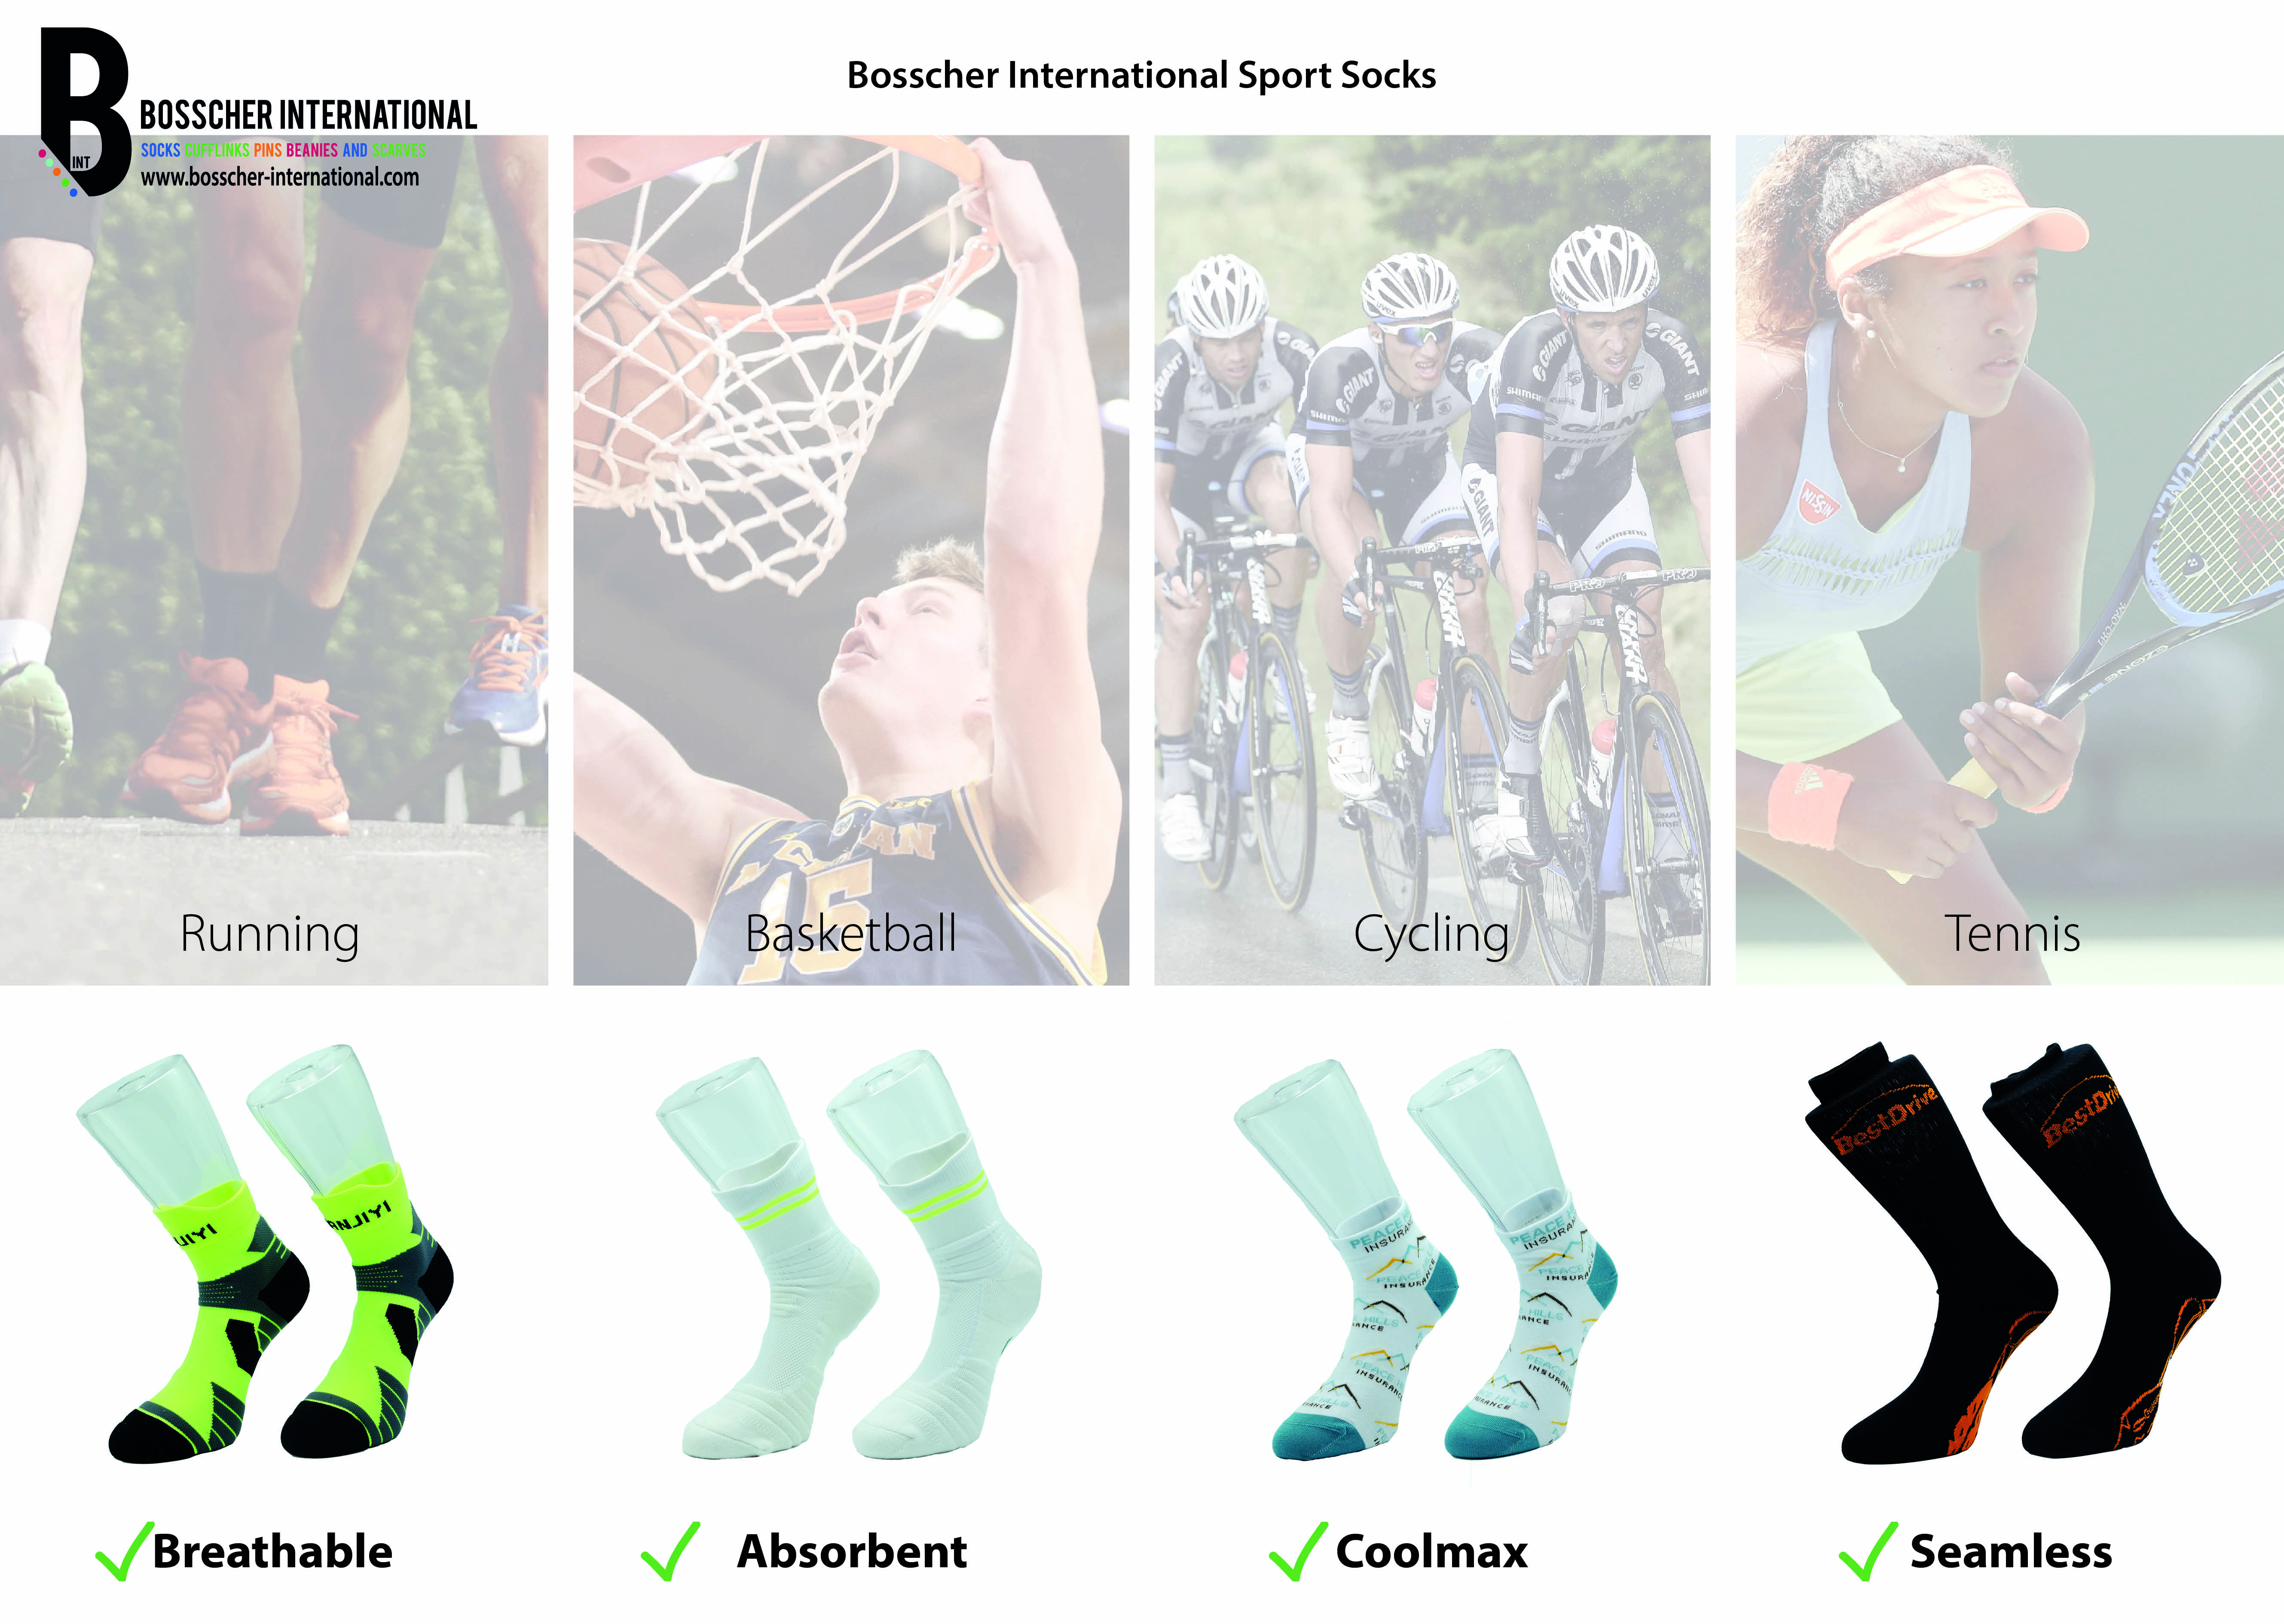 SPORT SOCKS FOR EVERY SPORT FIRST CLASS MATERIALS SPECIAL SIZES